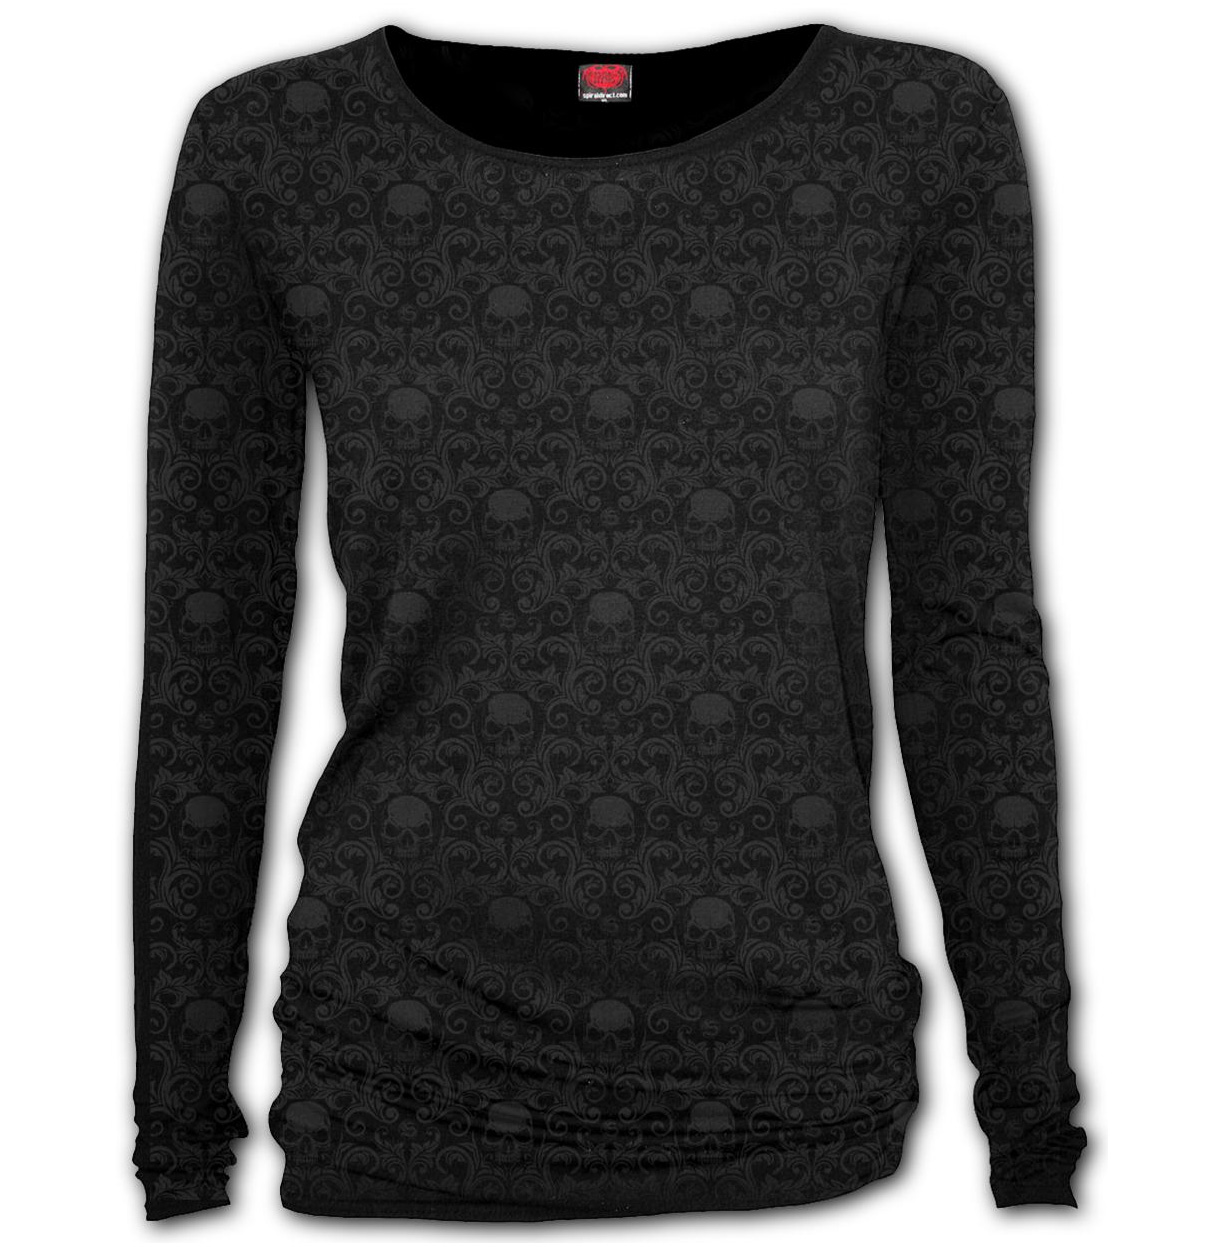 Spiral-Gothic-Elegance-Ladies-Blk-Goth-Scroll-IMPRESSION-L-Sleeve-Top-All-Sizes thumbnail 11